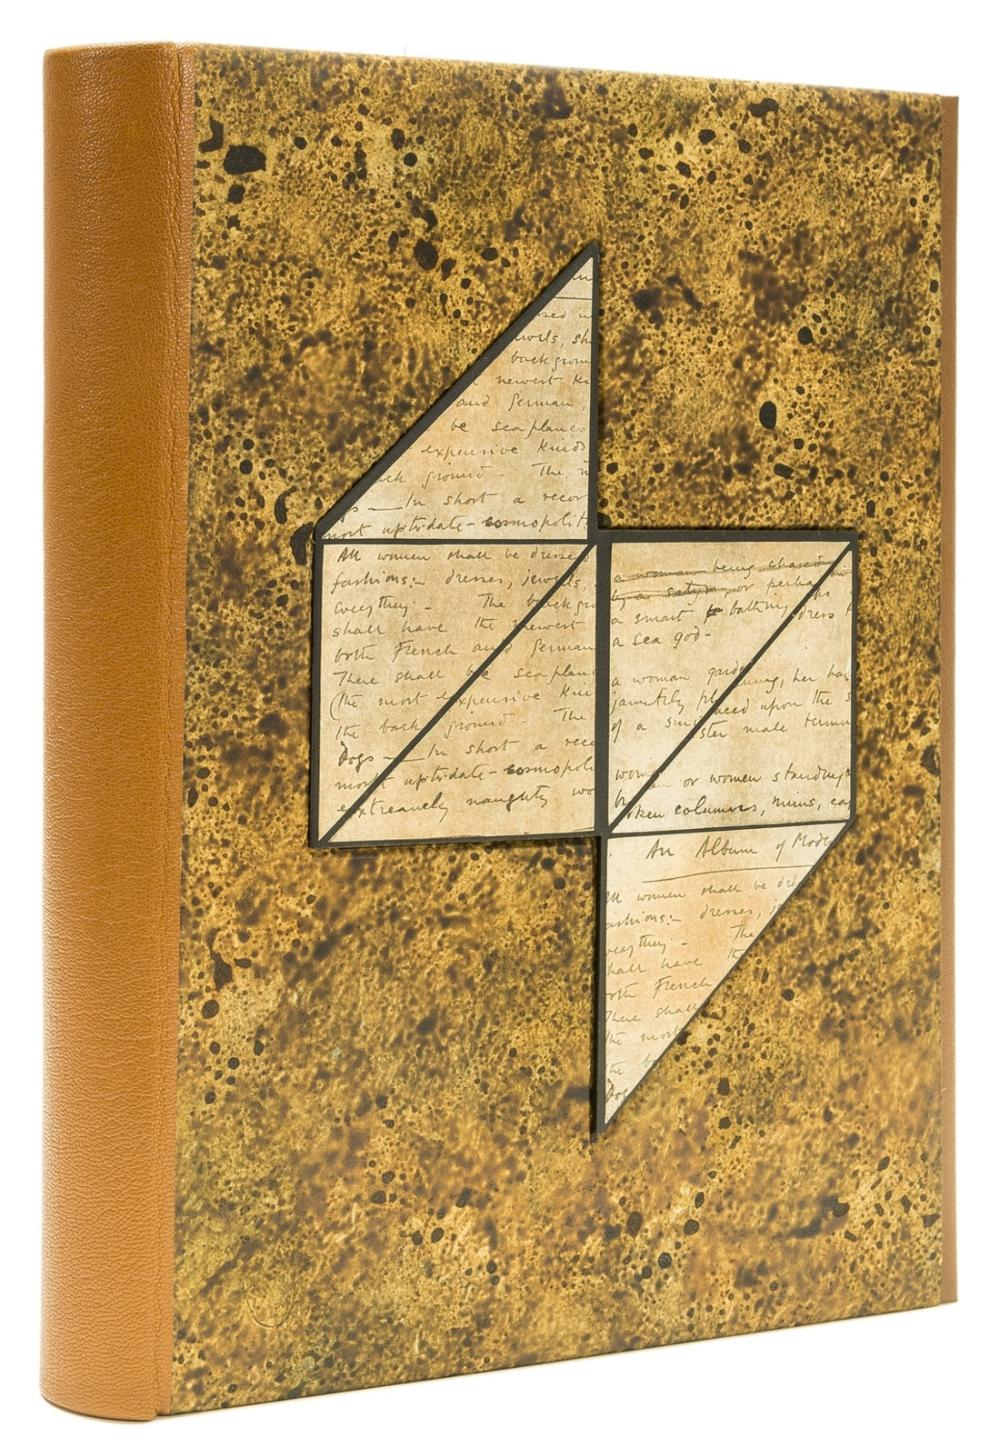 Conway (Stephen, binder).- Myers (Colin) The Book Decorations of Thomas Lowinsky, one of 5 specially-bound copies, Oldham, Incline Press, 2001.